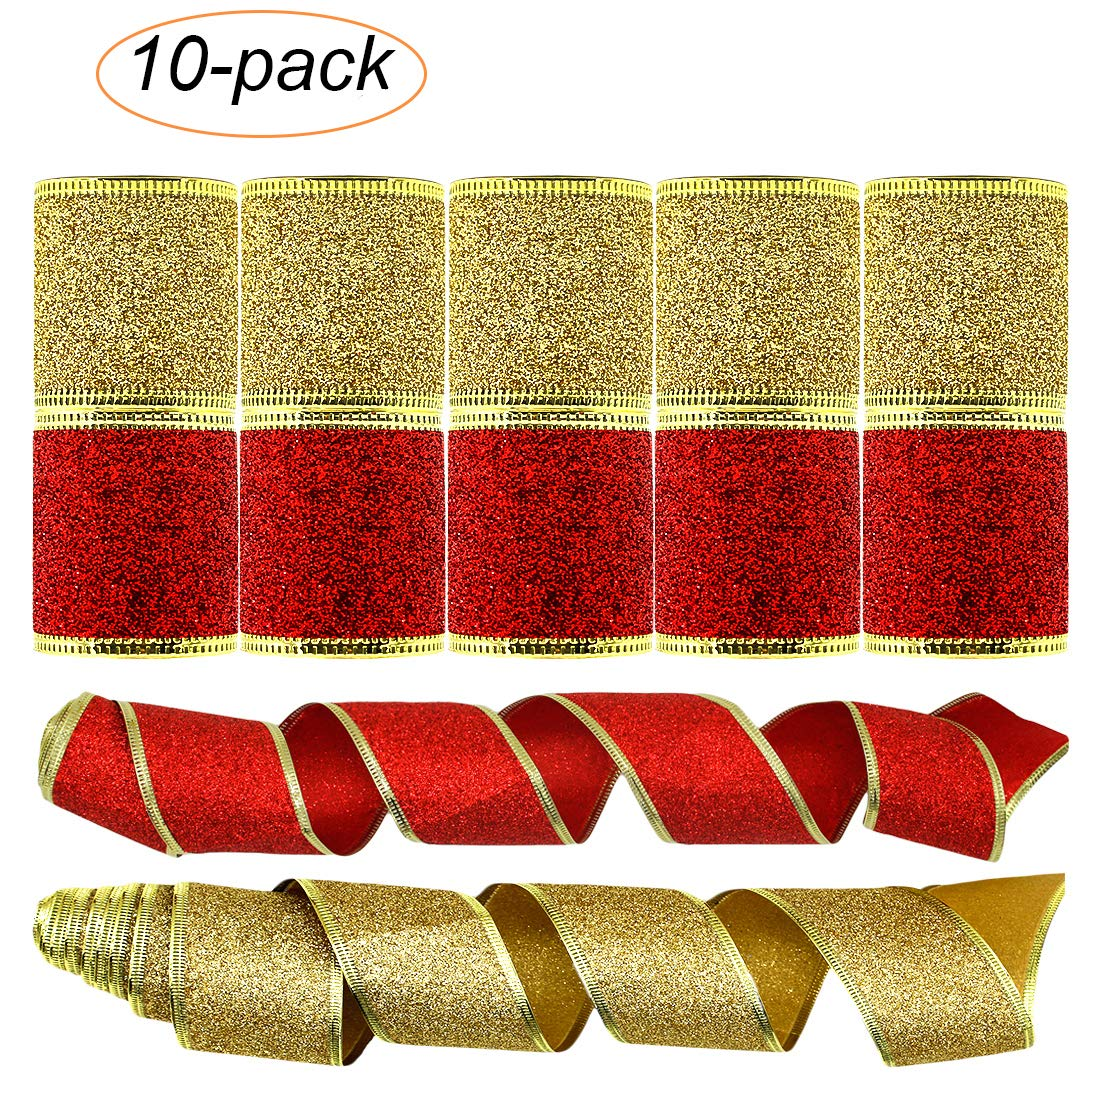 Shinybaby Decorations Wedding Ribbon, Wired Edge Holiday Shimmer Fabric Glitter Gift Wrapping Ribbons DIY Craft Wedding Decorations, 20 Yards (10 Roll x 2 yd) by 2inch, gold Red